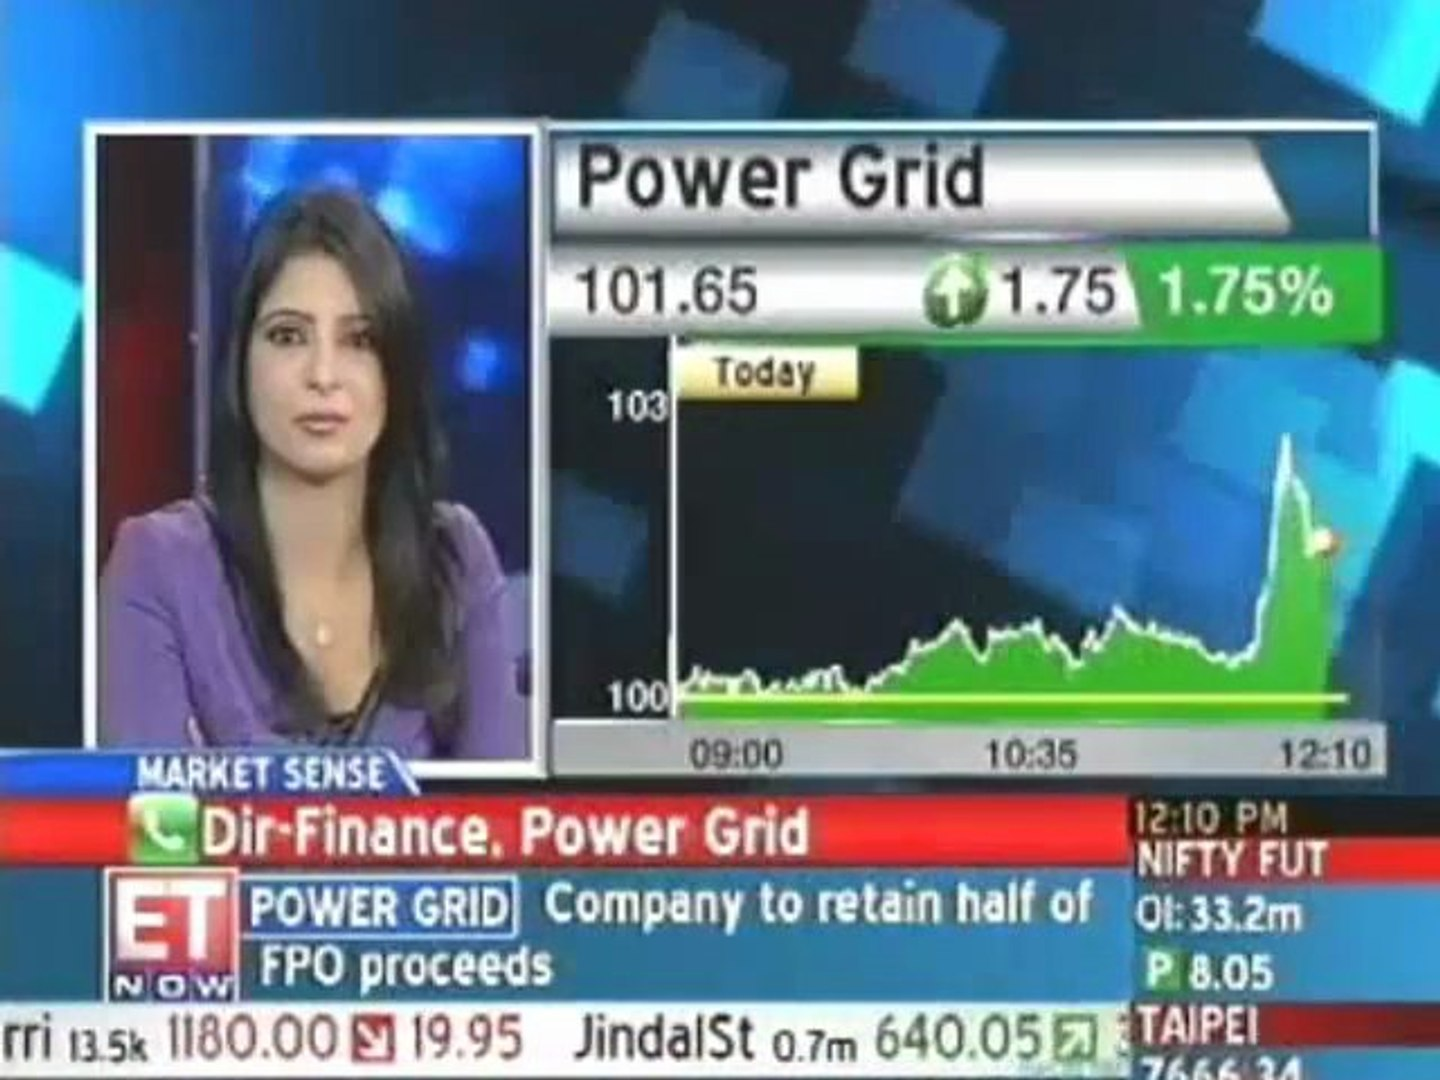 Government approves PowerGrid Corporation FPO